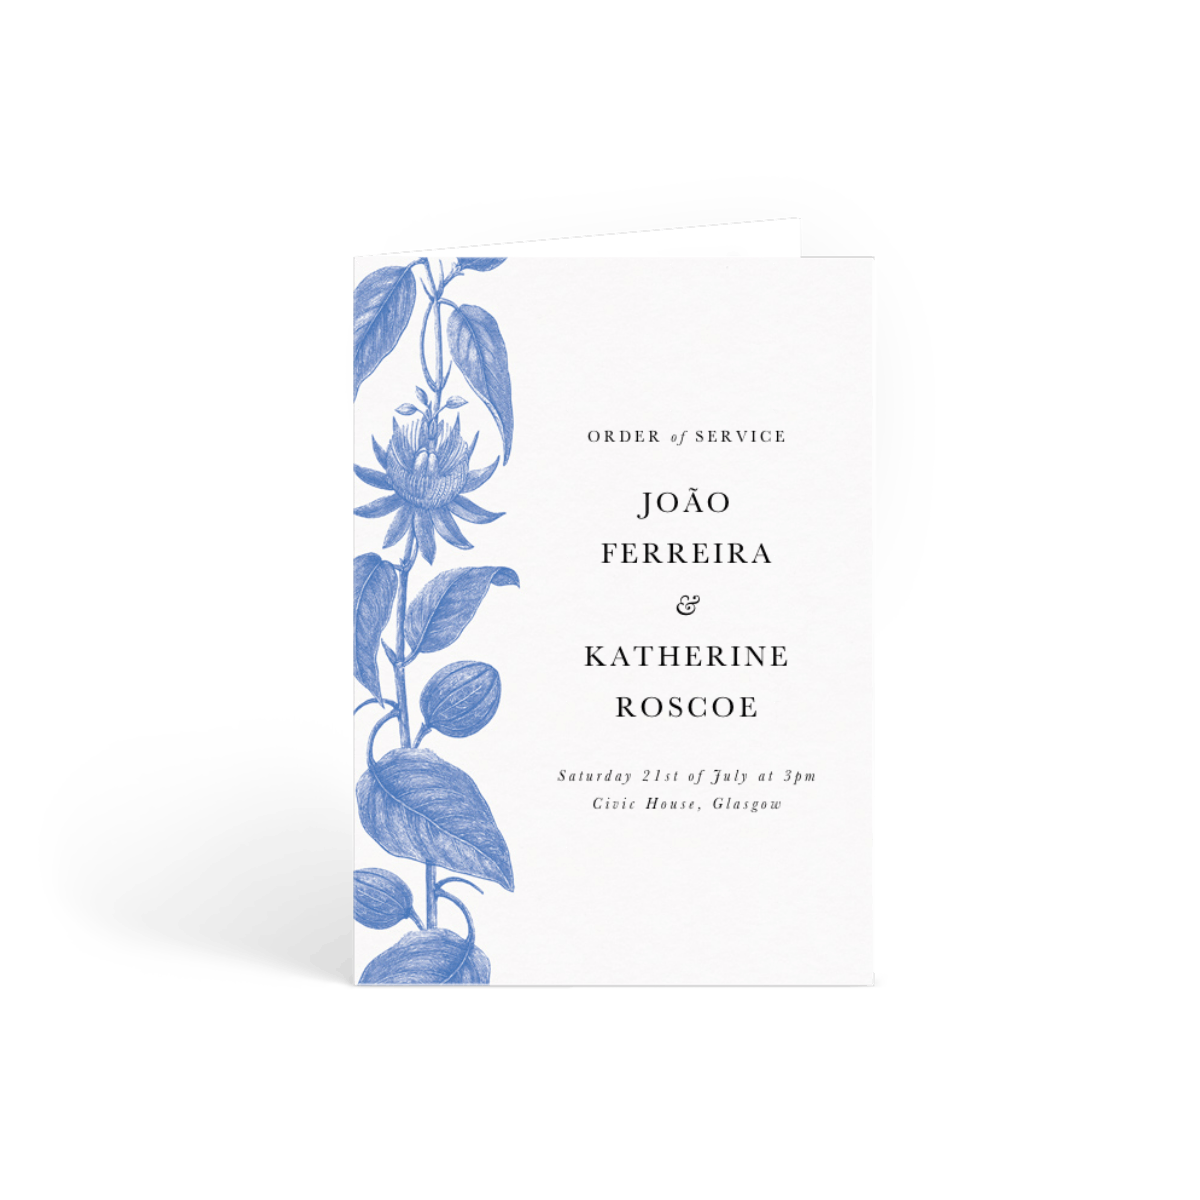 Https%3a%2f%2fwww.papier.com%2fproduct image%2f69645%2f2%2fblue passion flower 16460 front 1555282352.png?ixlib=rb 1.1